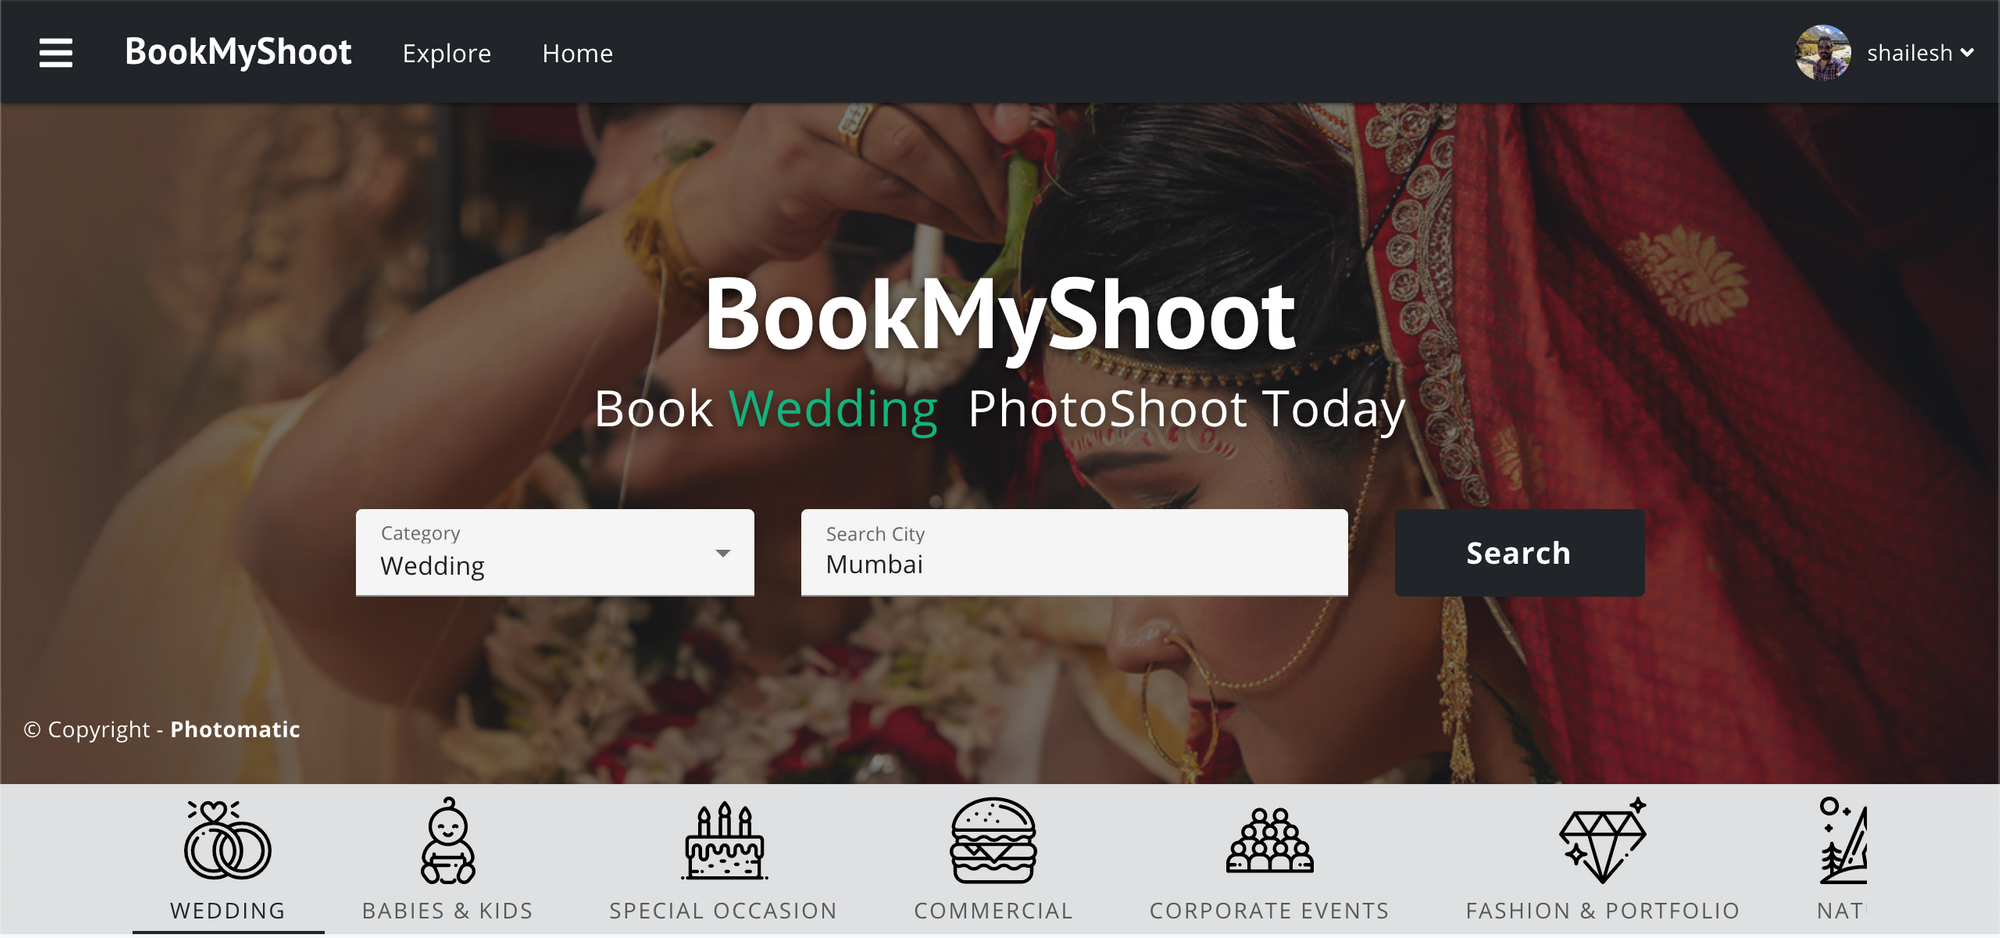 Welcome to BookMyShoot